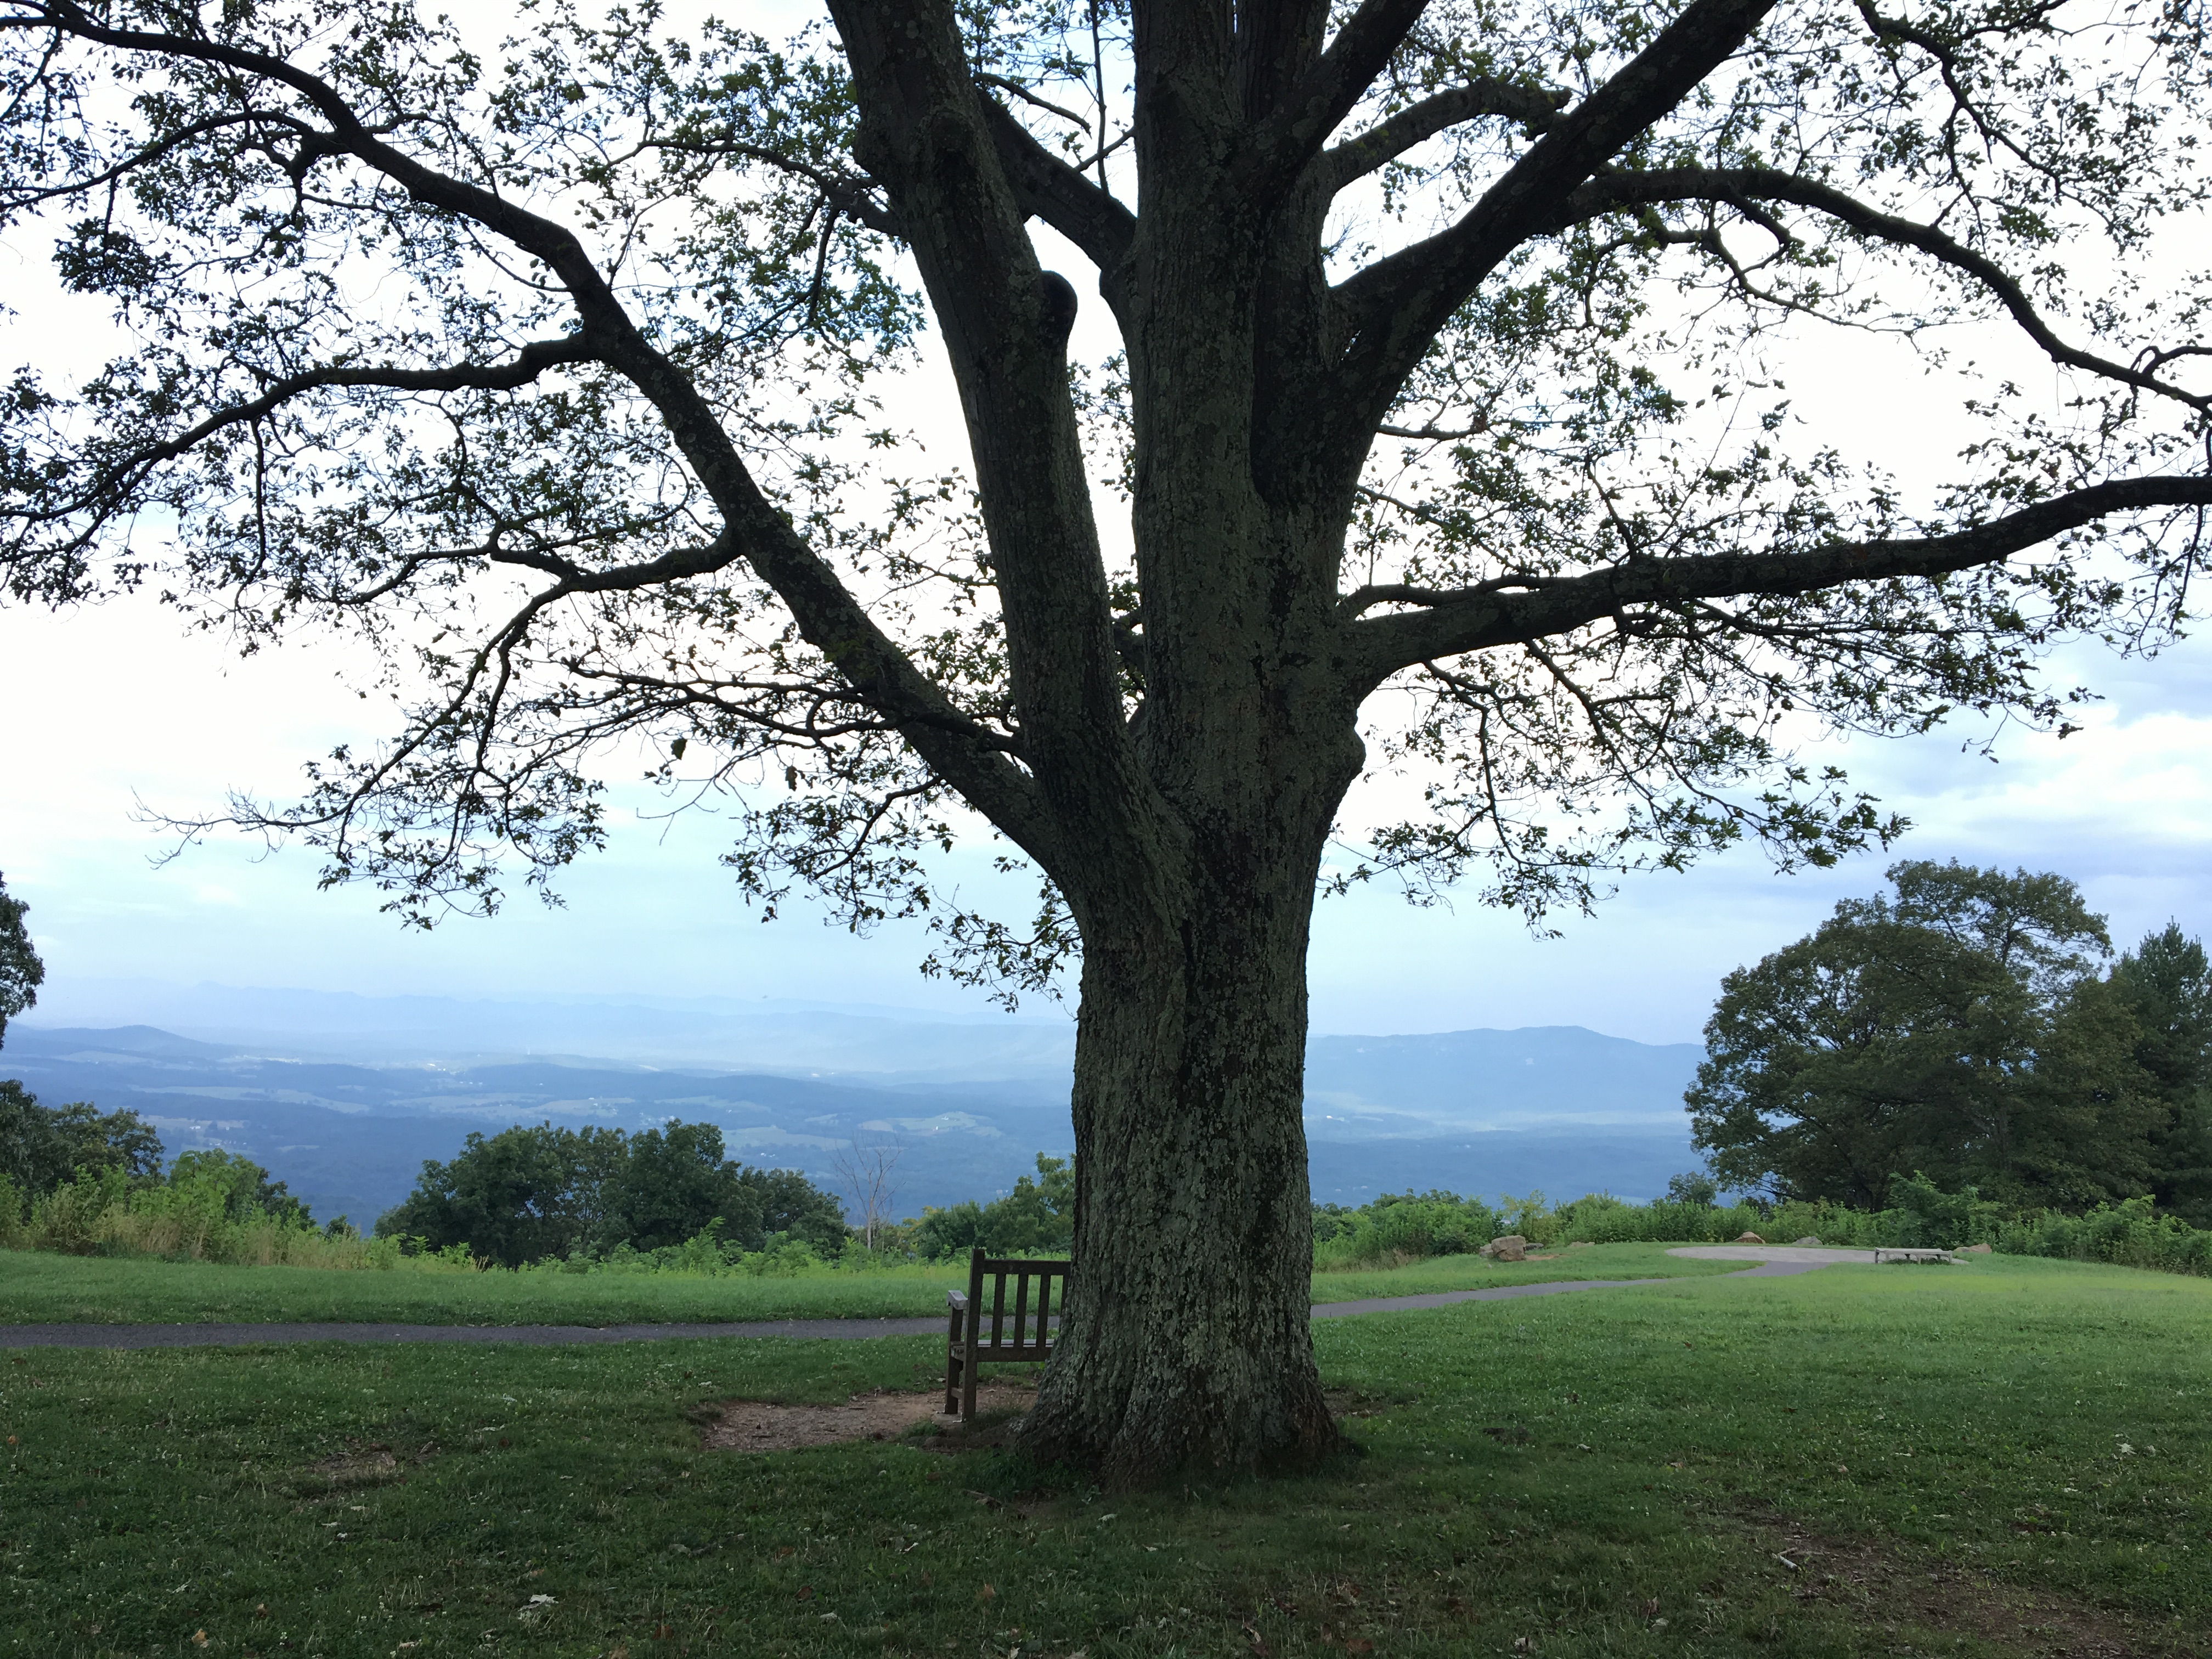 Sit a spell and watch the clouds take shape and roll over the mountains at Shenandoah National Park. (Cheryl Welch |Travel Beat Magazine)